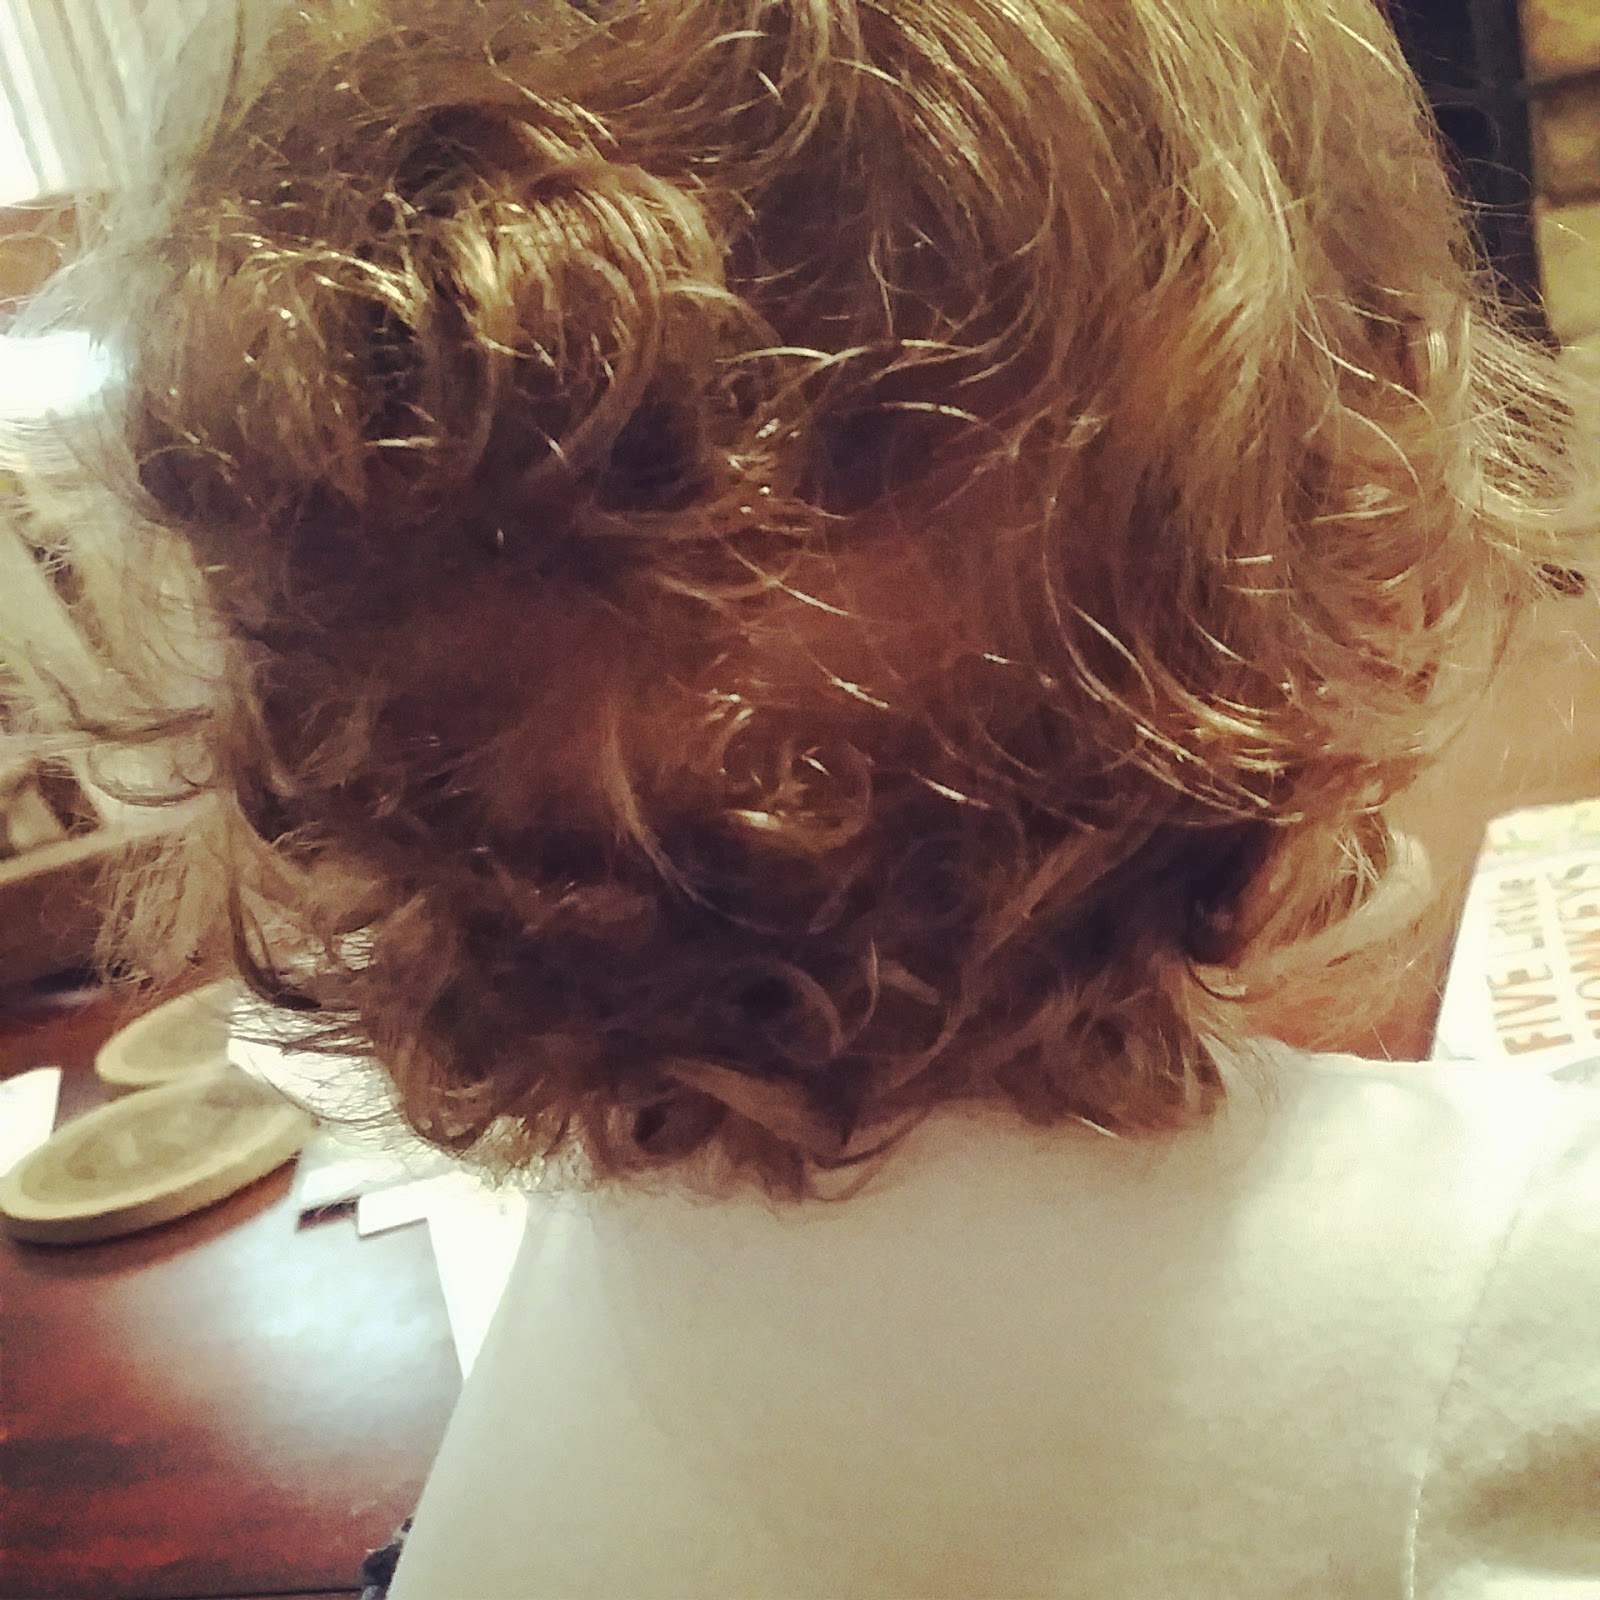 I am so thankful for each and every curl on that sweet head